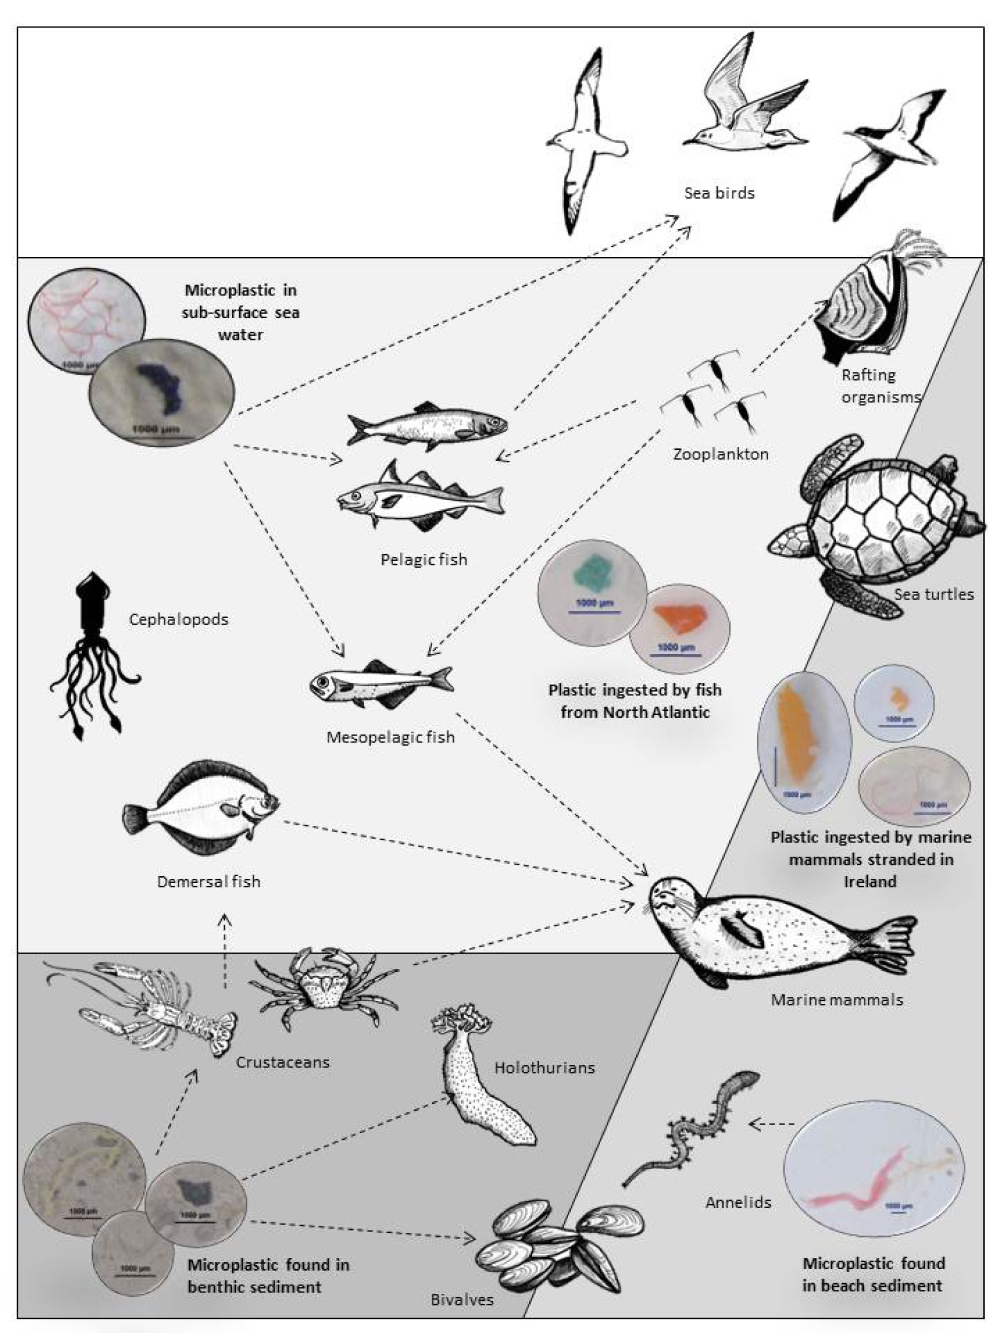 LusherA-2015-Microplastics in the marine environment distribution interactions and effects-In Marine anthropogenic litter-Springer